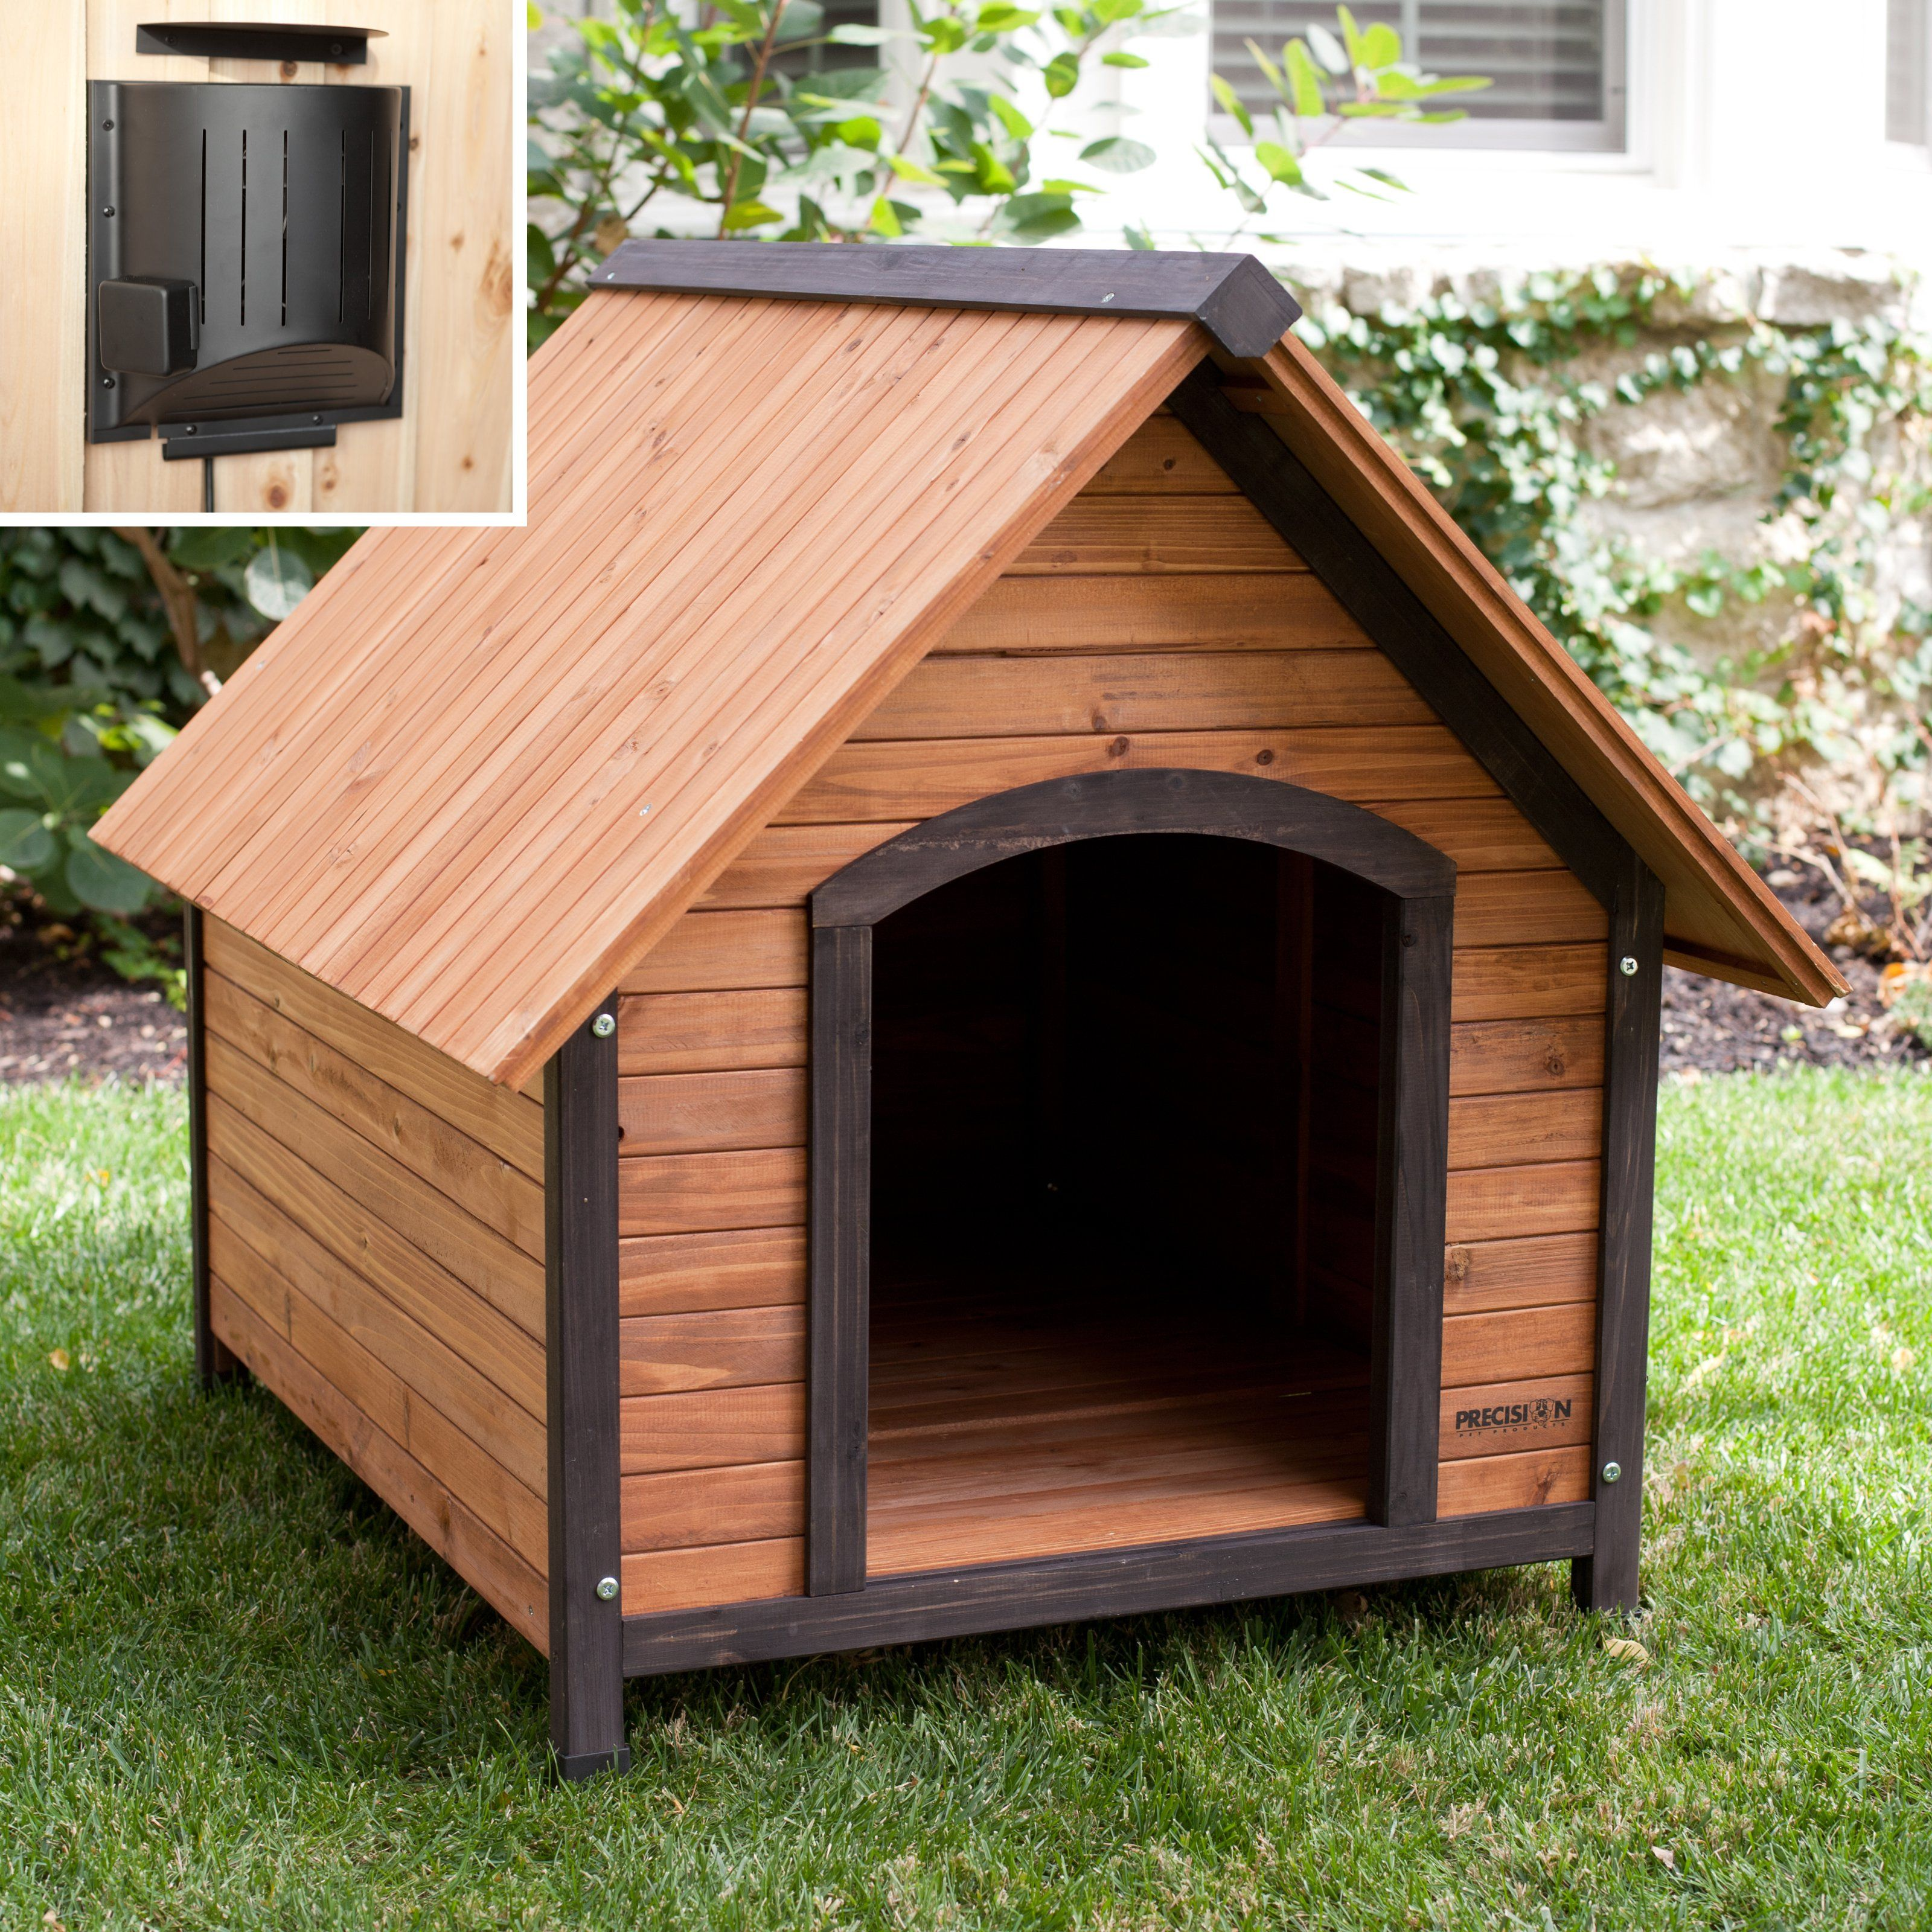 Precision Outback Country Lodge Dog House With Heater 156 99 Love